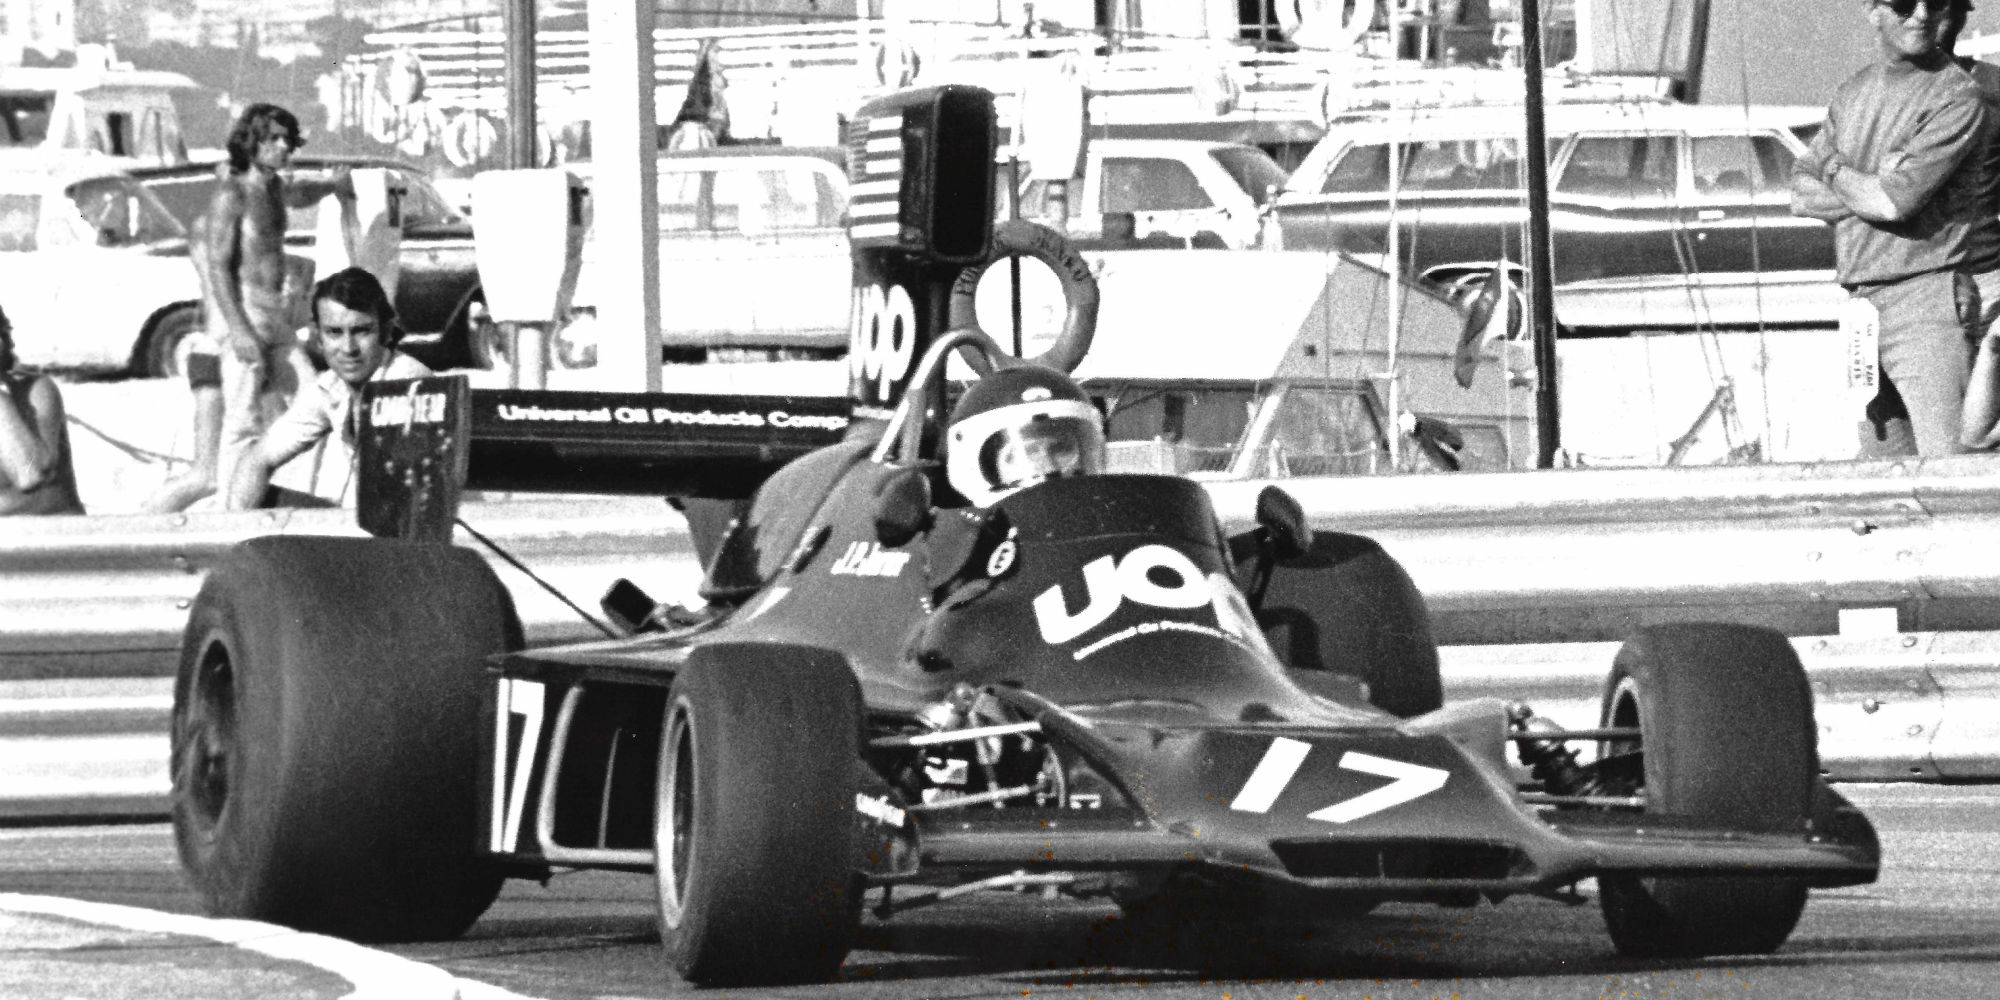 The Ex – J.P. Jarier, 3rd in the 1974 Monaco Grand Prix 1974 Shadow DN3 Formula 1